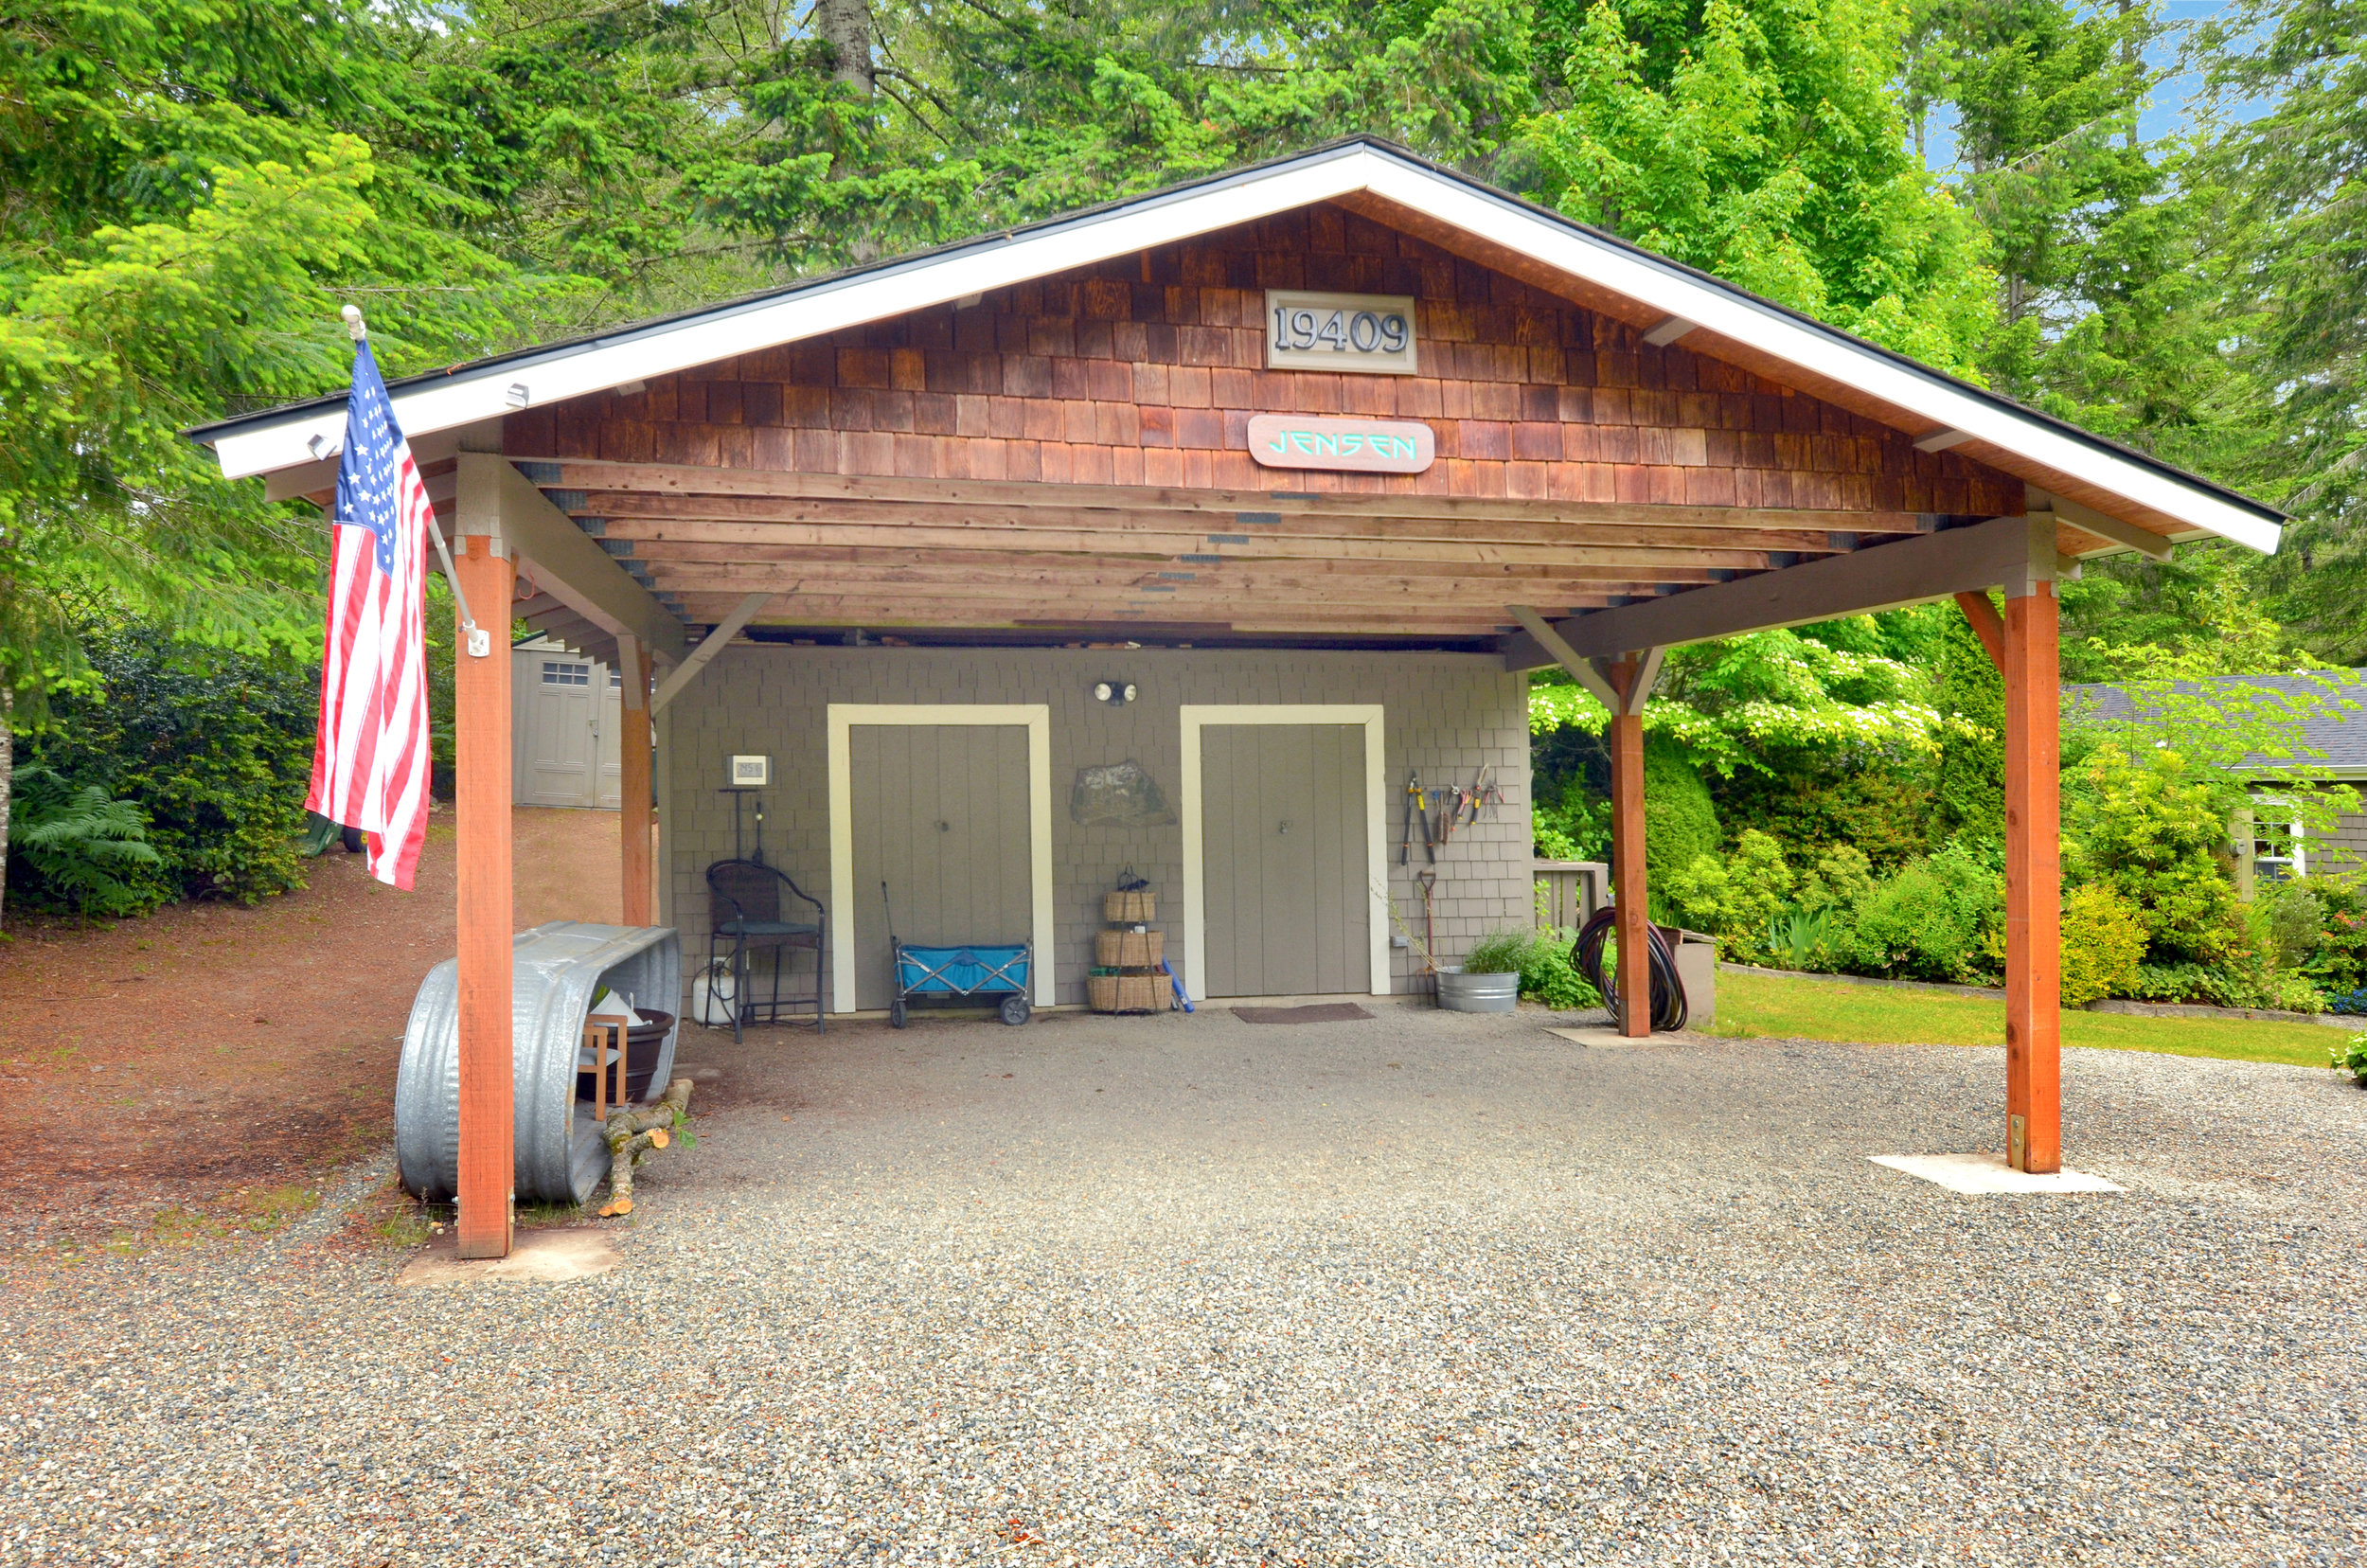 This 2 car 480 sq ft car port has a workshop and lean-to attached. It's a great spot for covered parking and there's plenty of additional parking in the gravel drive, including a spot for an RV.